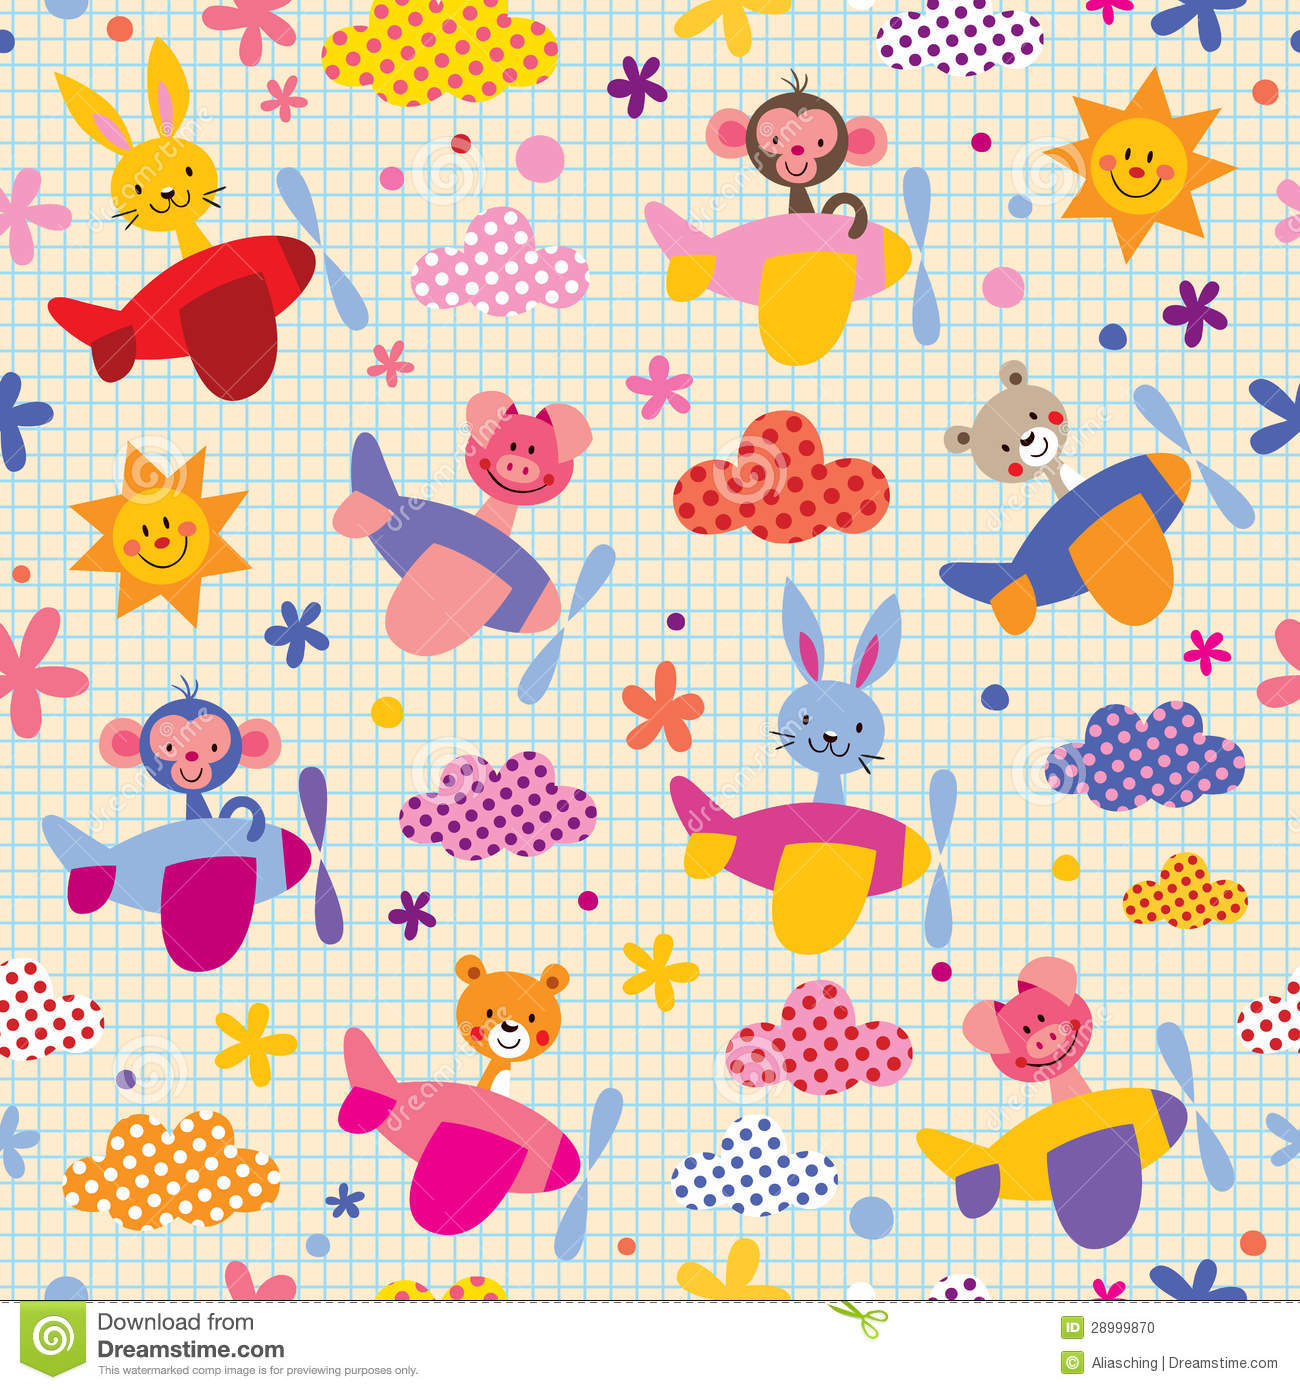 Cute animals in airplanes pattern